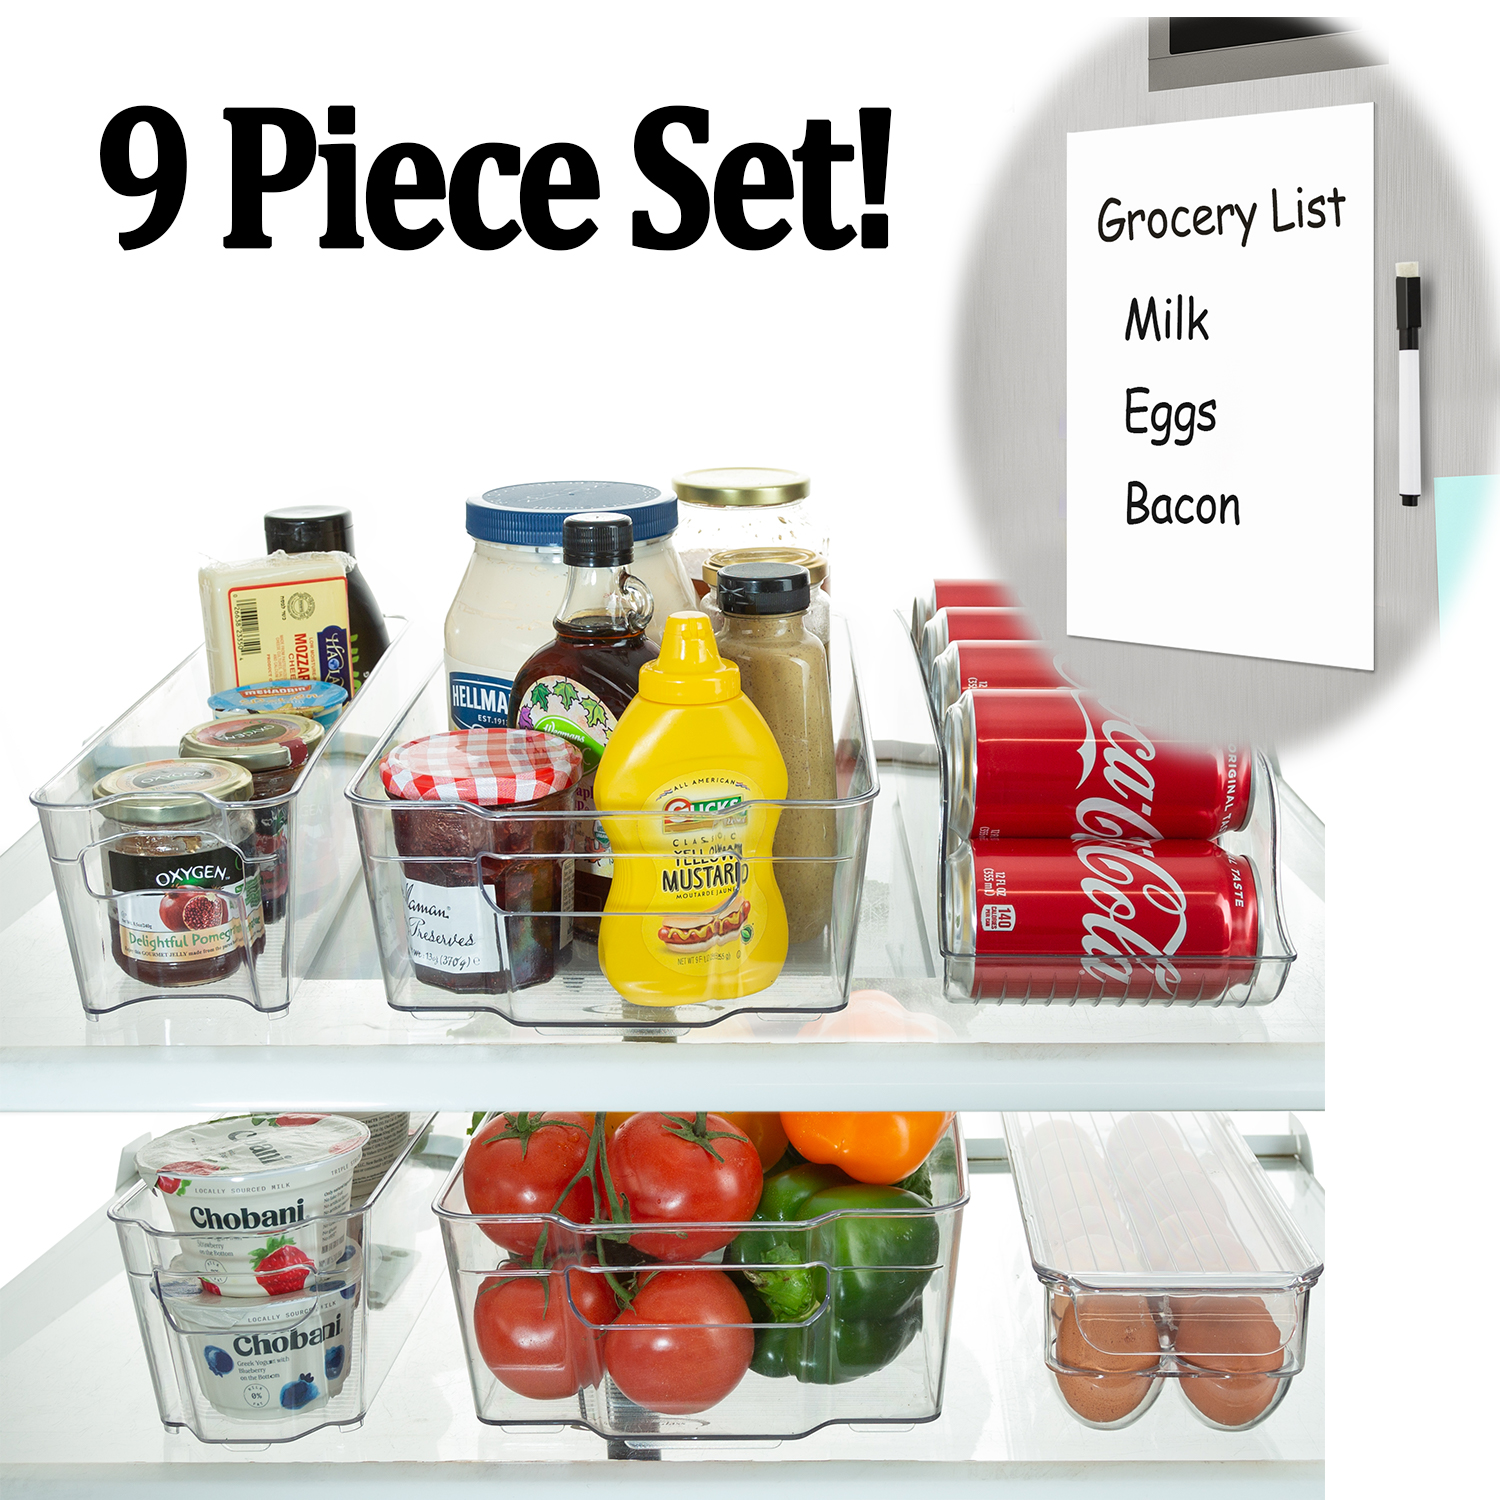 Refrigerator Organizer Bins - Stackable Storage Containers For Fridge, Freezer, Pantry, Kitchen, - 9 Piece Set Includes Can Dispenser And Egg Tray - Fridge White Board Magnet With Marker Included